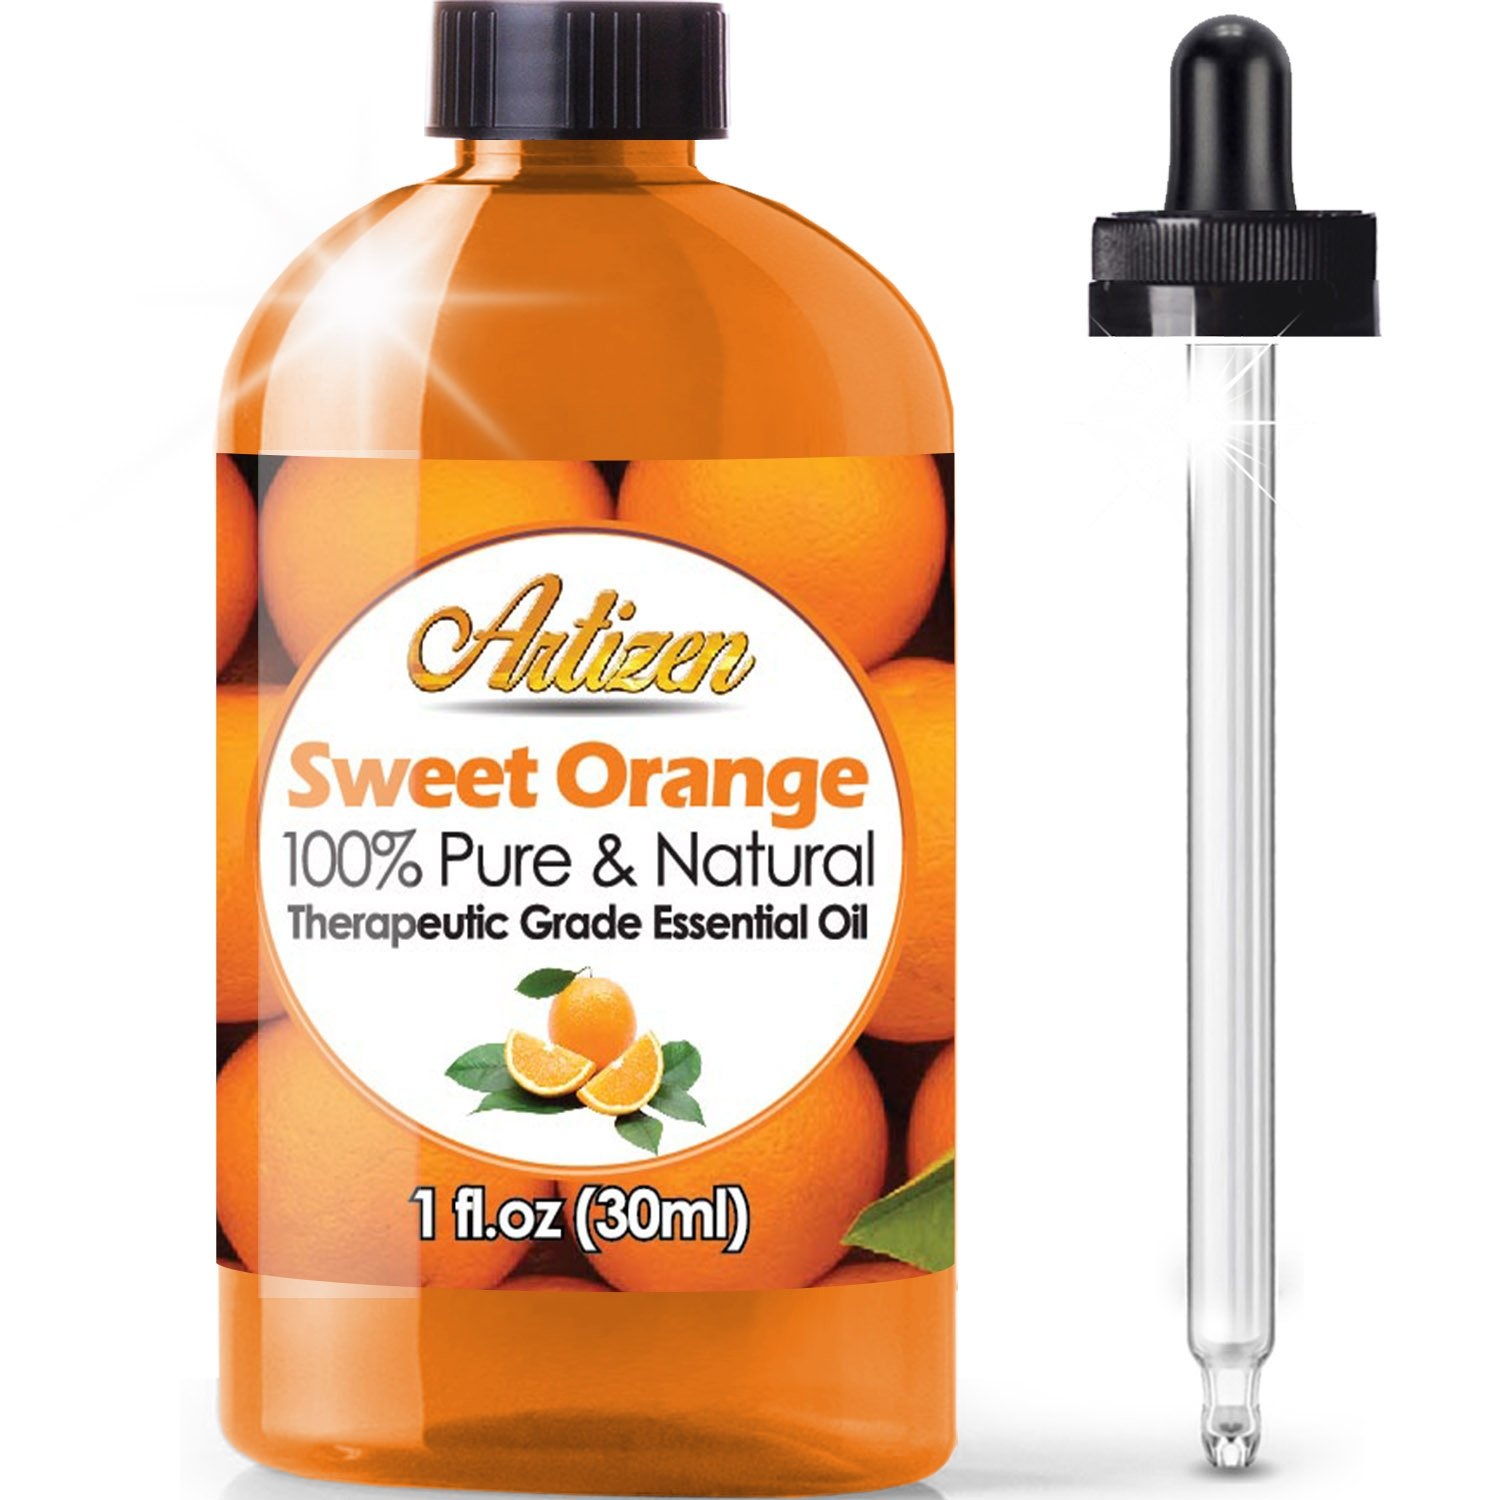 Artizen Sweet Orange Essential Oil (100% PURE& NATURAL - UNDILUTED) Therapeutic Grade - Huge 1oz Bottle - Perfect for Aromatherapy, Relaxation, Skin Therapy & More!